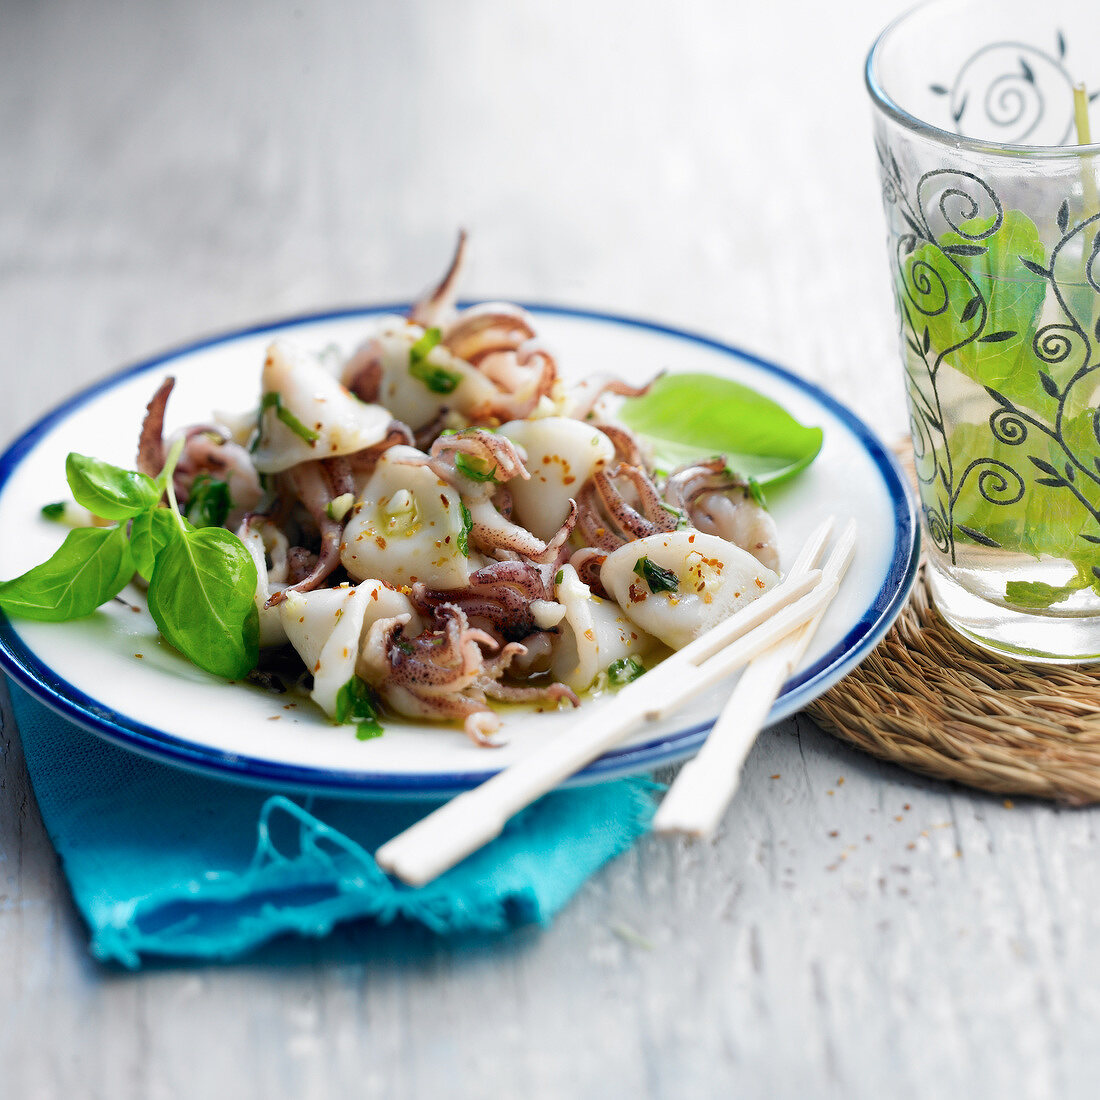 Squid with basil and garlic